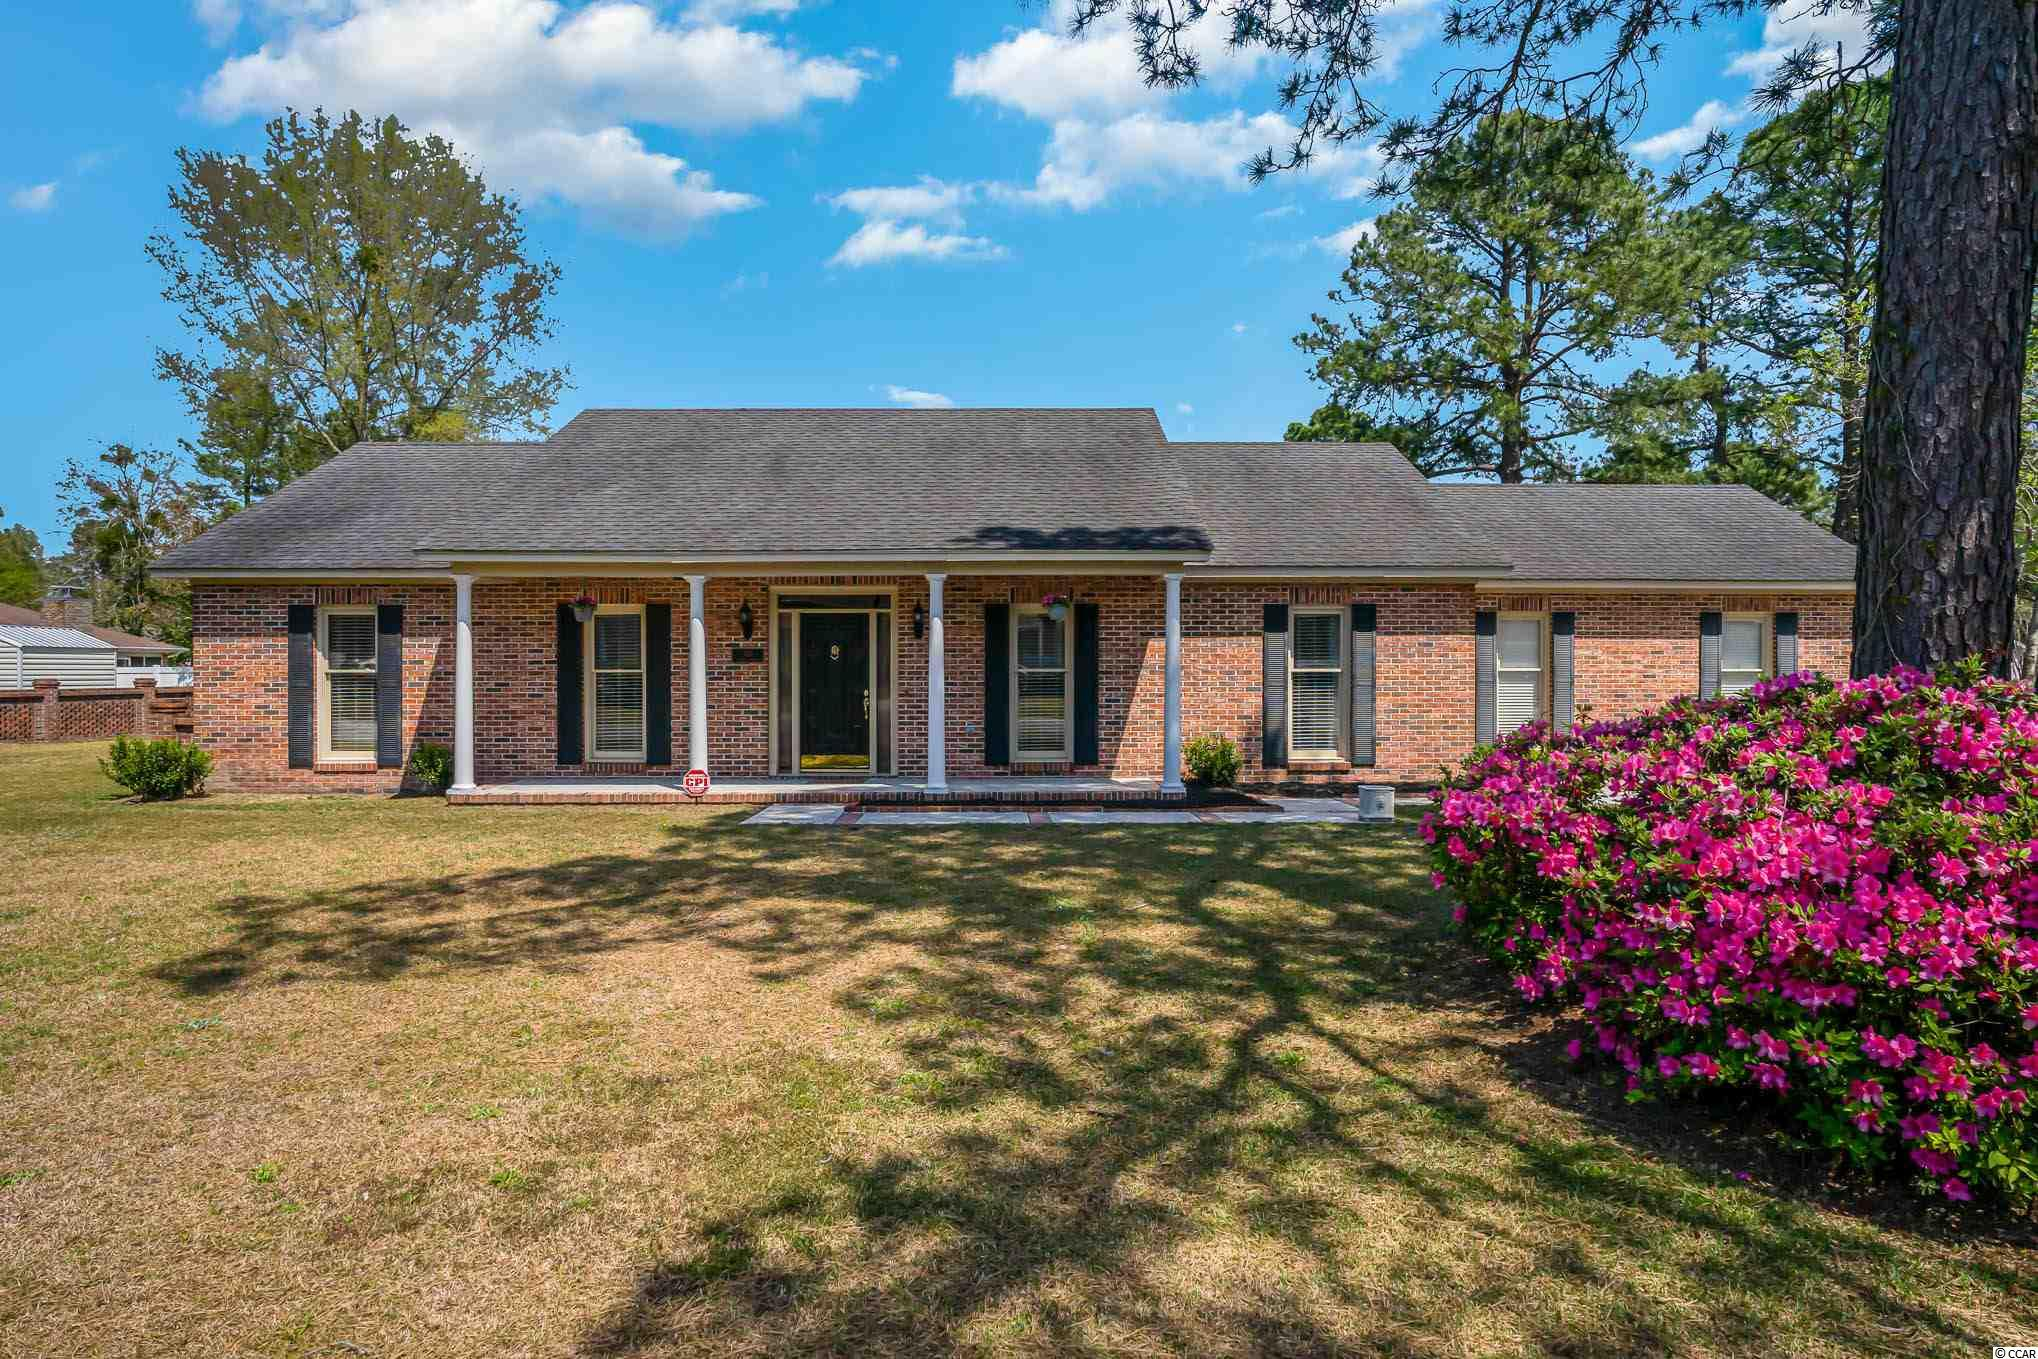 Get your sweet tea and rockers ready for the front porch of this beautiful brick home in the desirable Coastal Heights!  This home is situated on a large corner lot and is within walking distance to Coastal Carolina University and Conway Medical Center.  Enjoy the large back porch and fire pit in the brick fenced backyard.  There is a bonus heated and air conditioned room upstairs.  9 ft ceilings and wainscoting throughout the dining room and hallway.  Some furniture is negotiable.  Kitchen appliances and Washer/Dryer convey with the home.  Chandelier in the dining room does not stay.  Don't delay, this home will go quick!  Schedule a showing today!